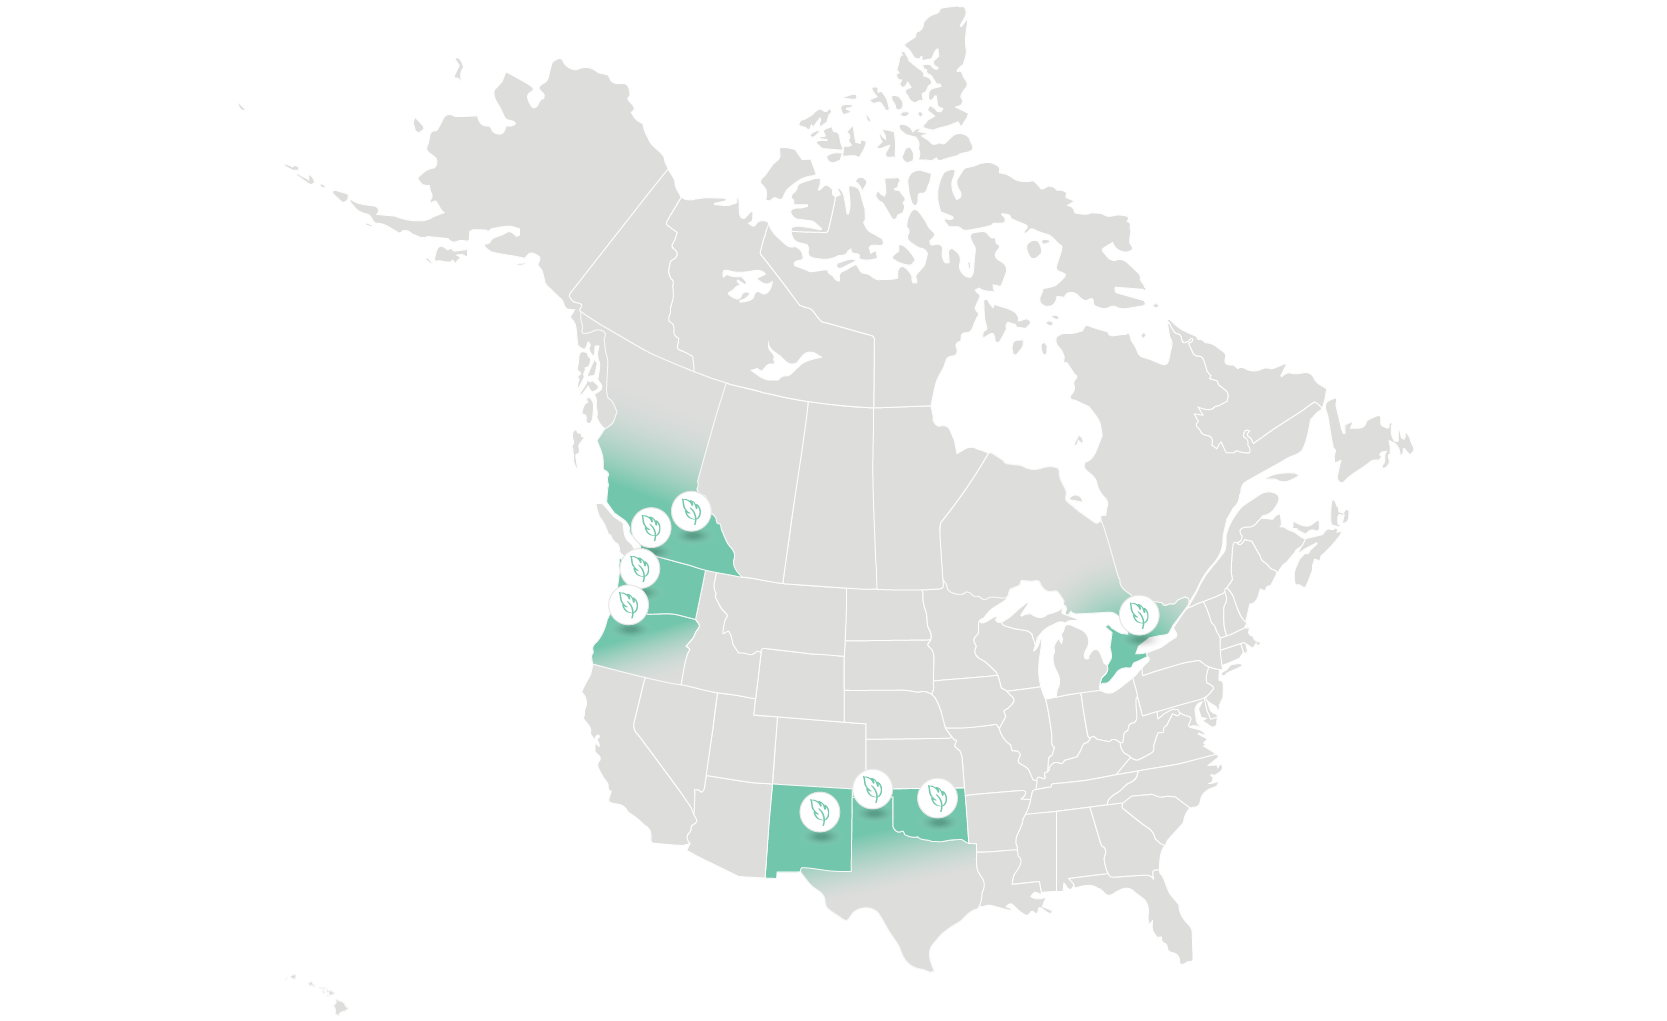 Map of Ecotex service areas in North America